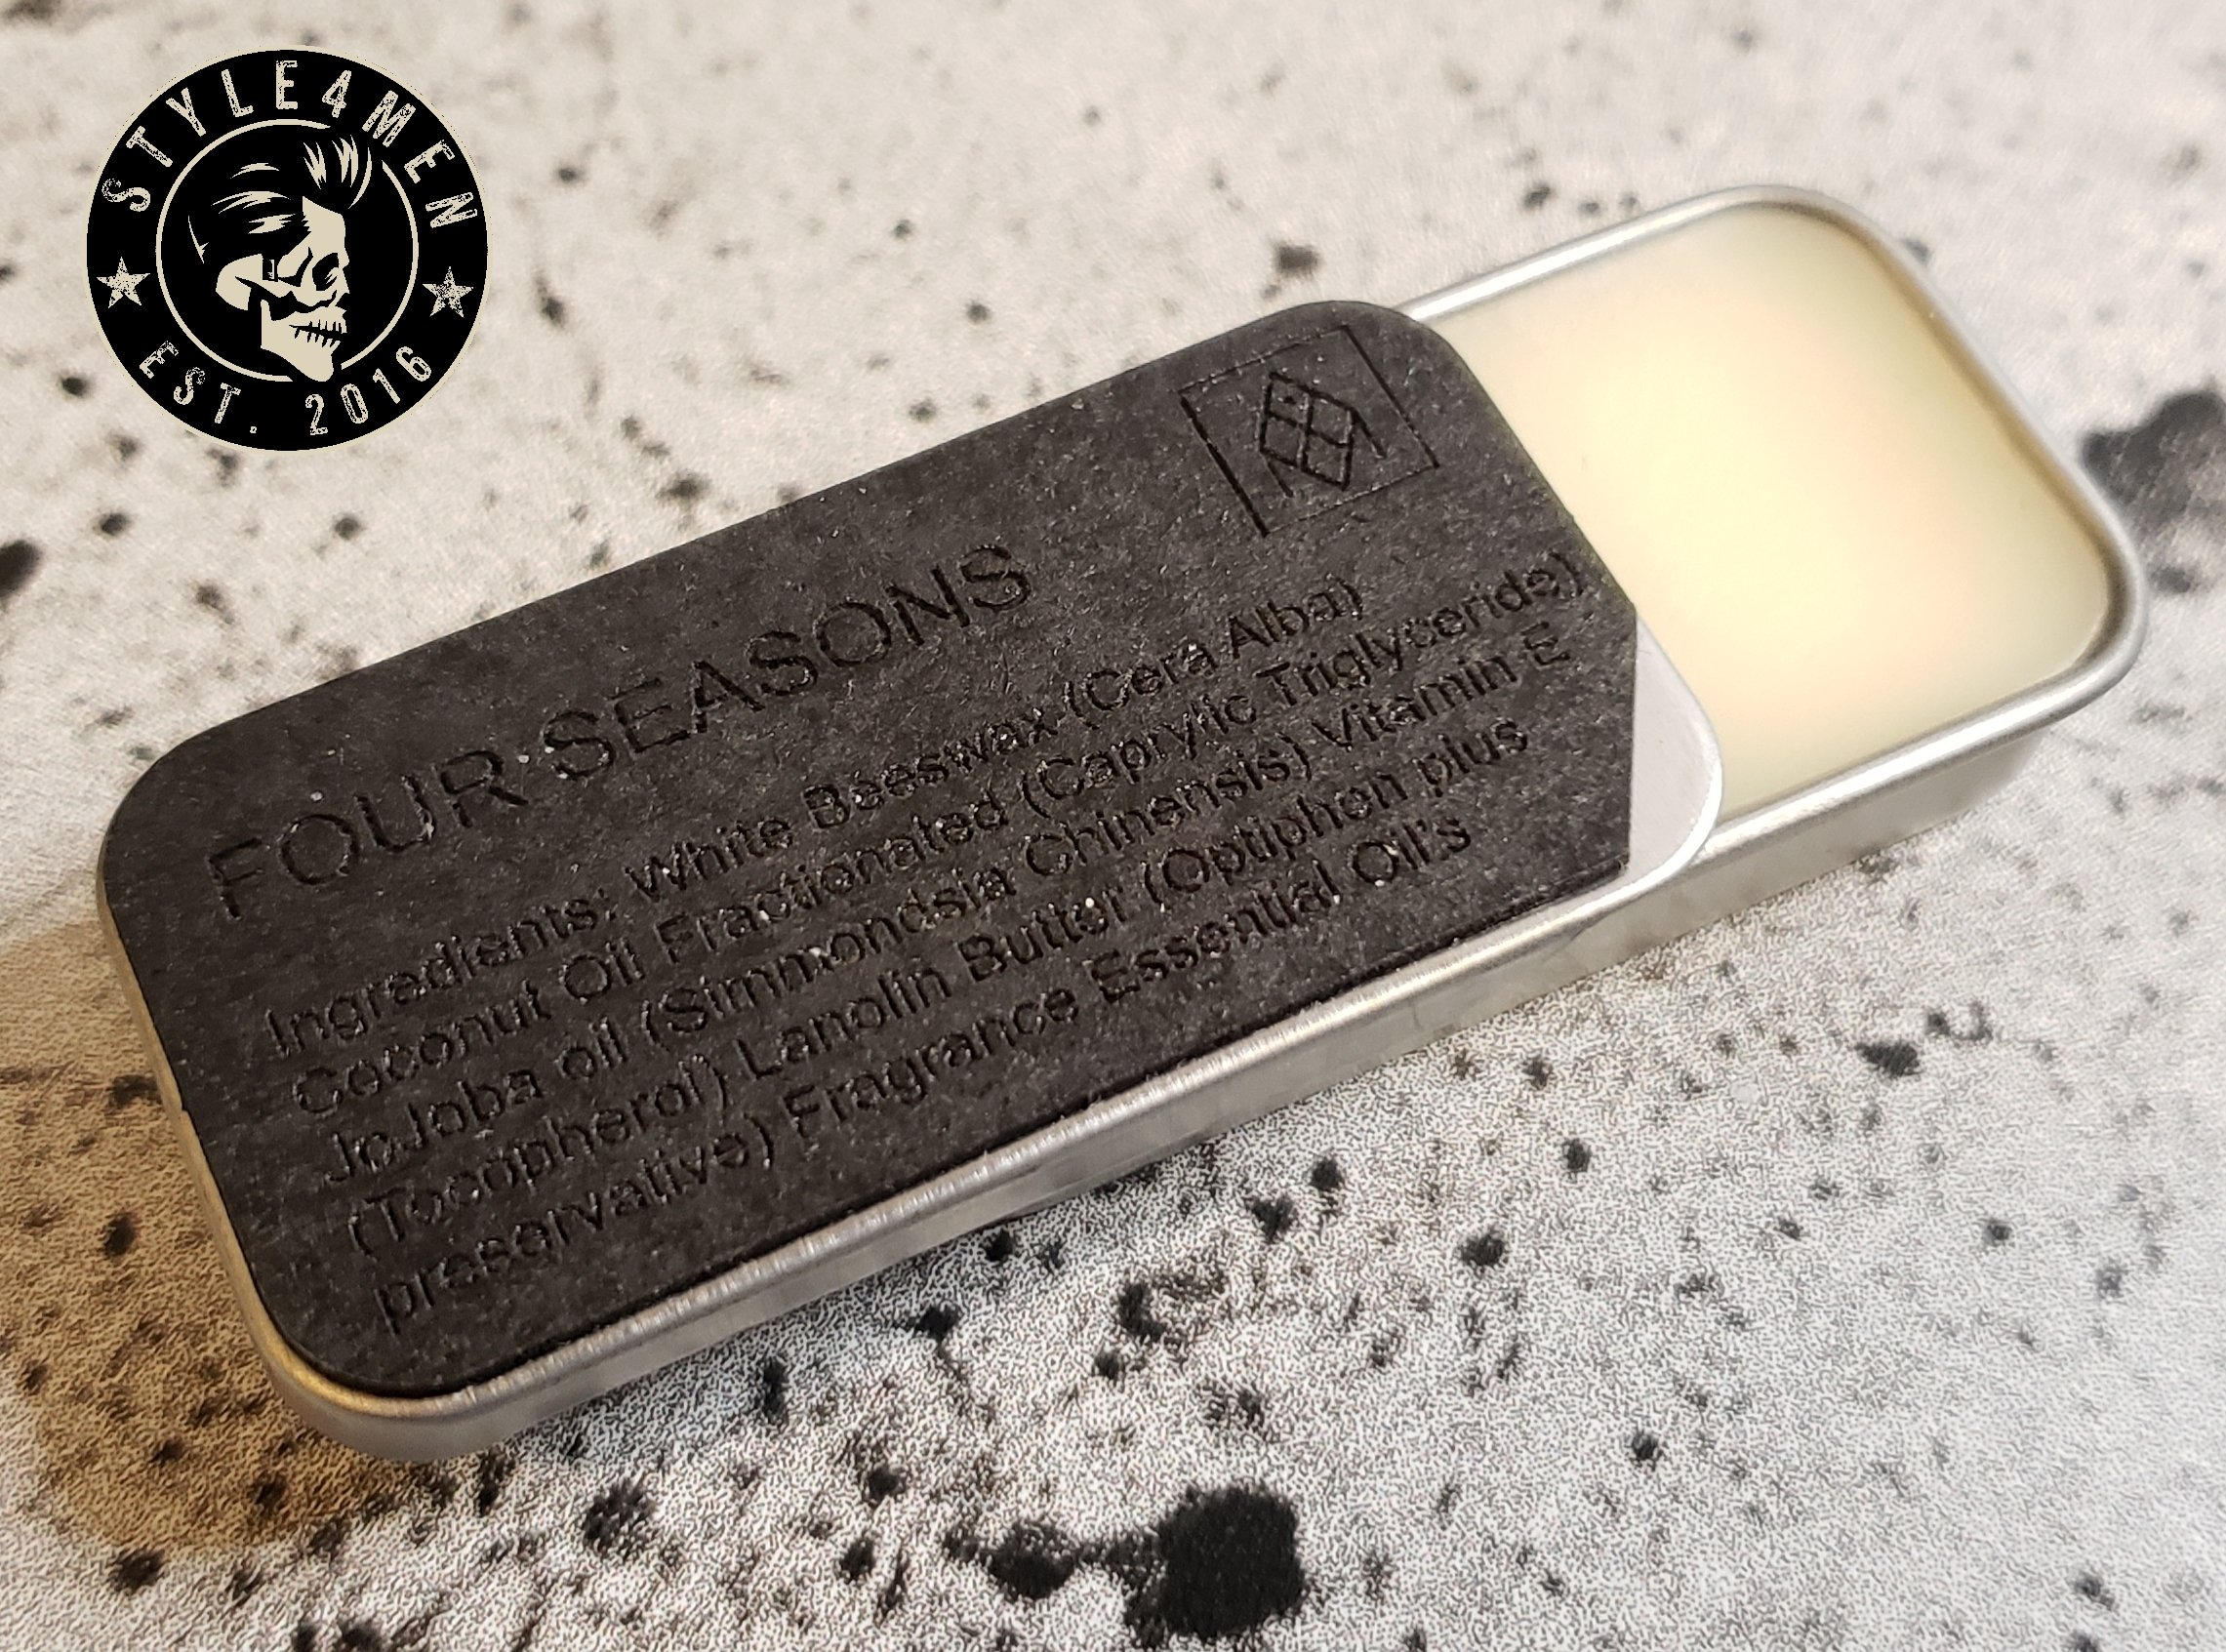 HAWK & SONS Solid Cologne